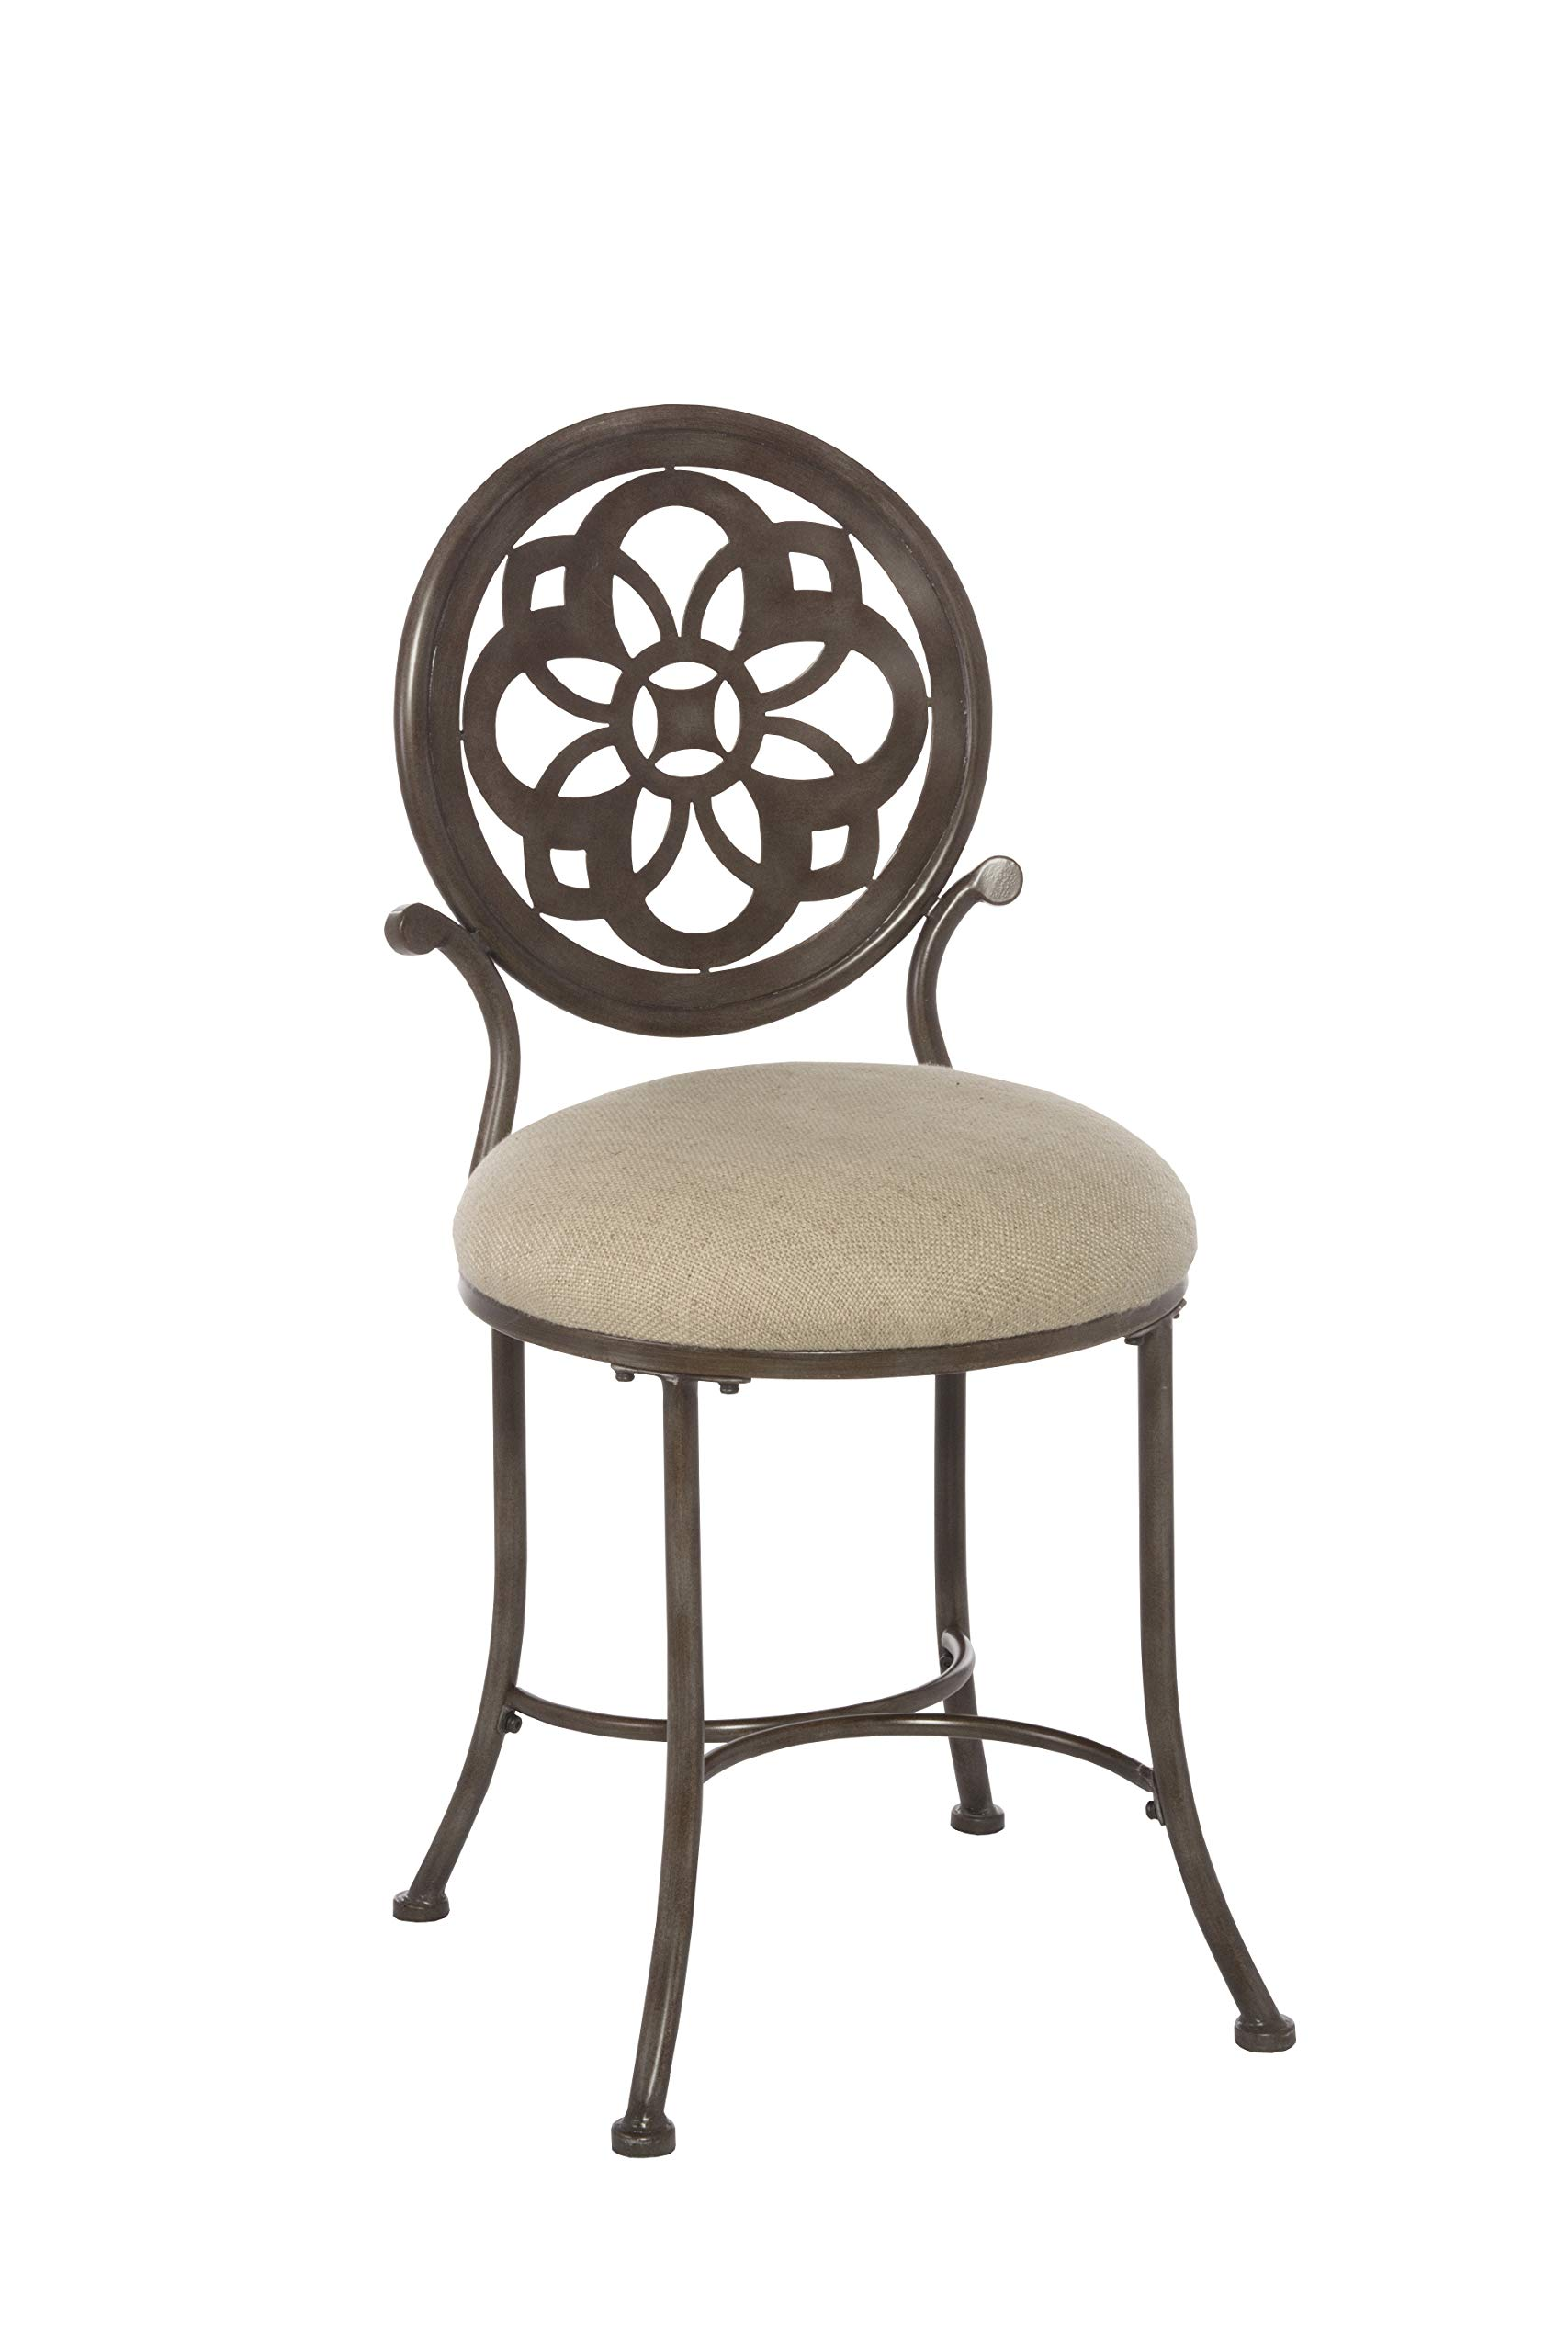 Hillsdale Furniture 50981 Marsala Vanity Stool, Gray with Brown highlighting with Cream Fabric